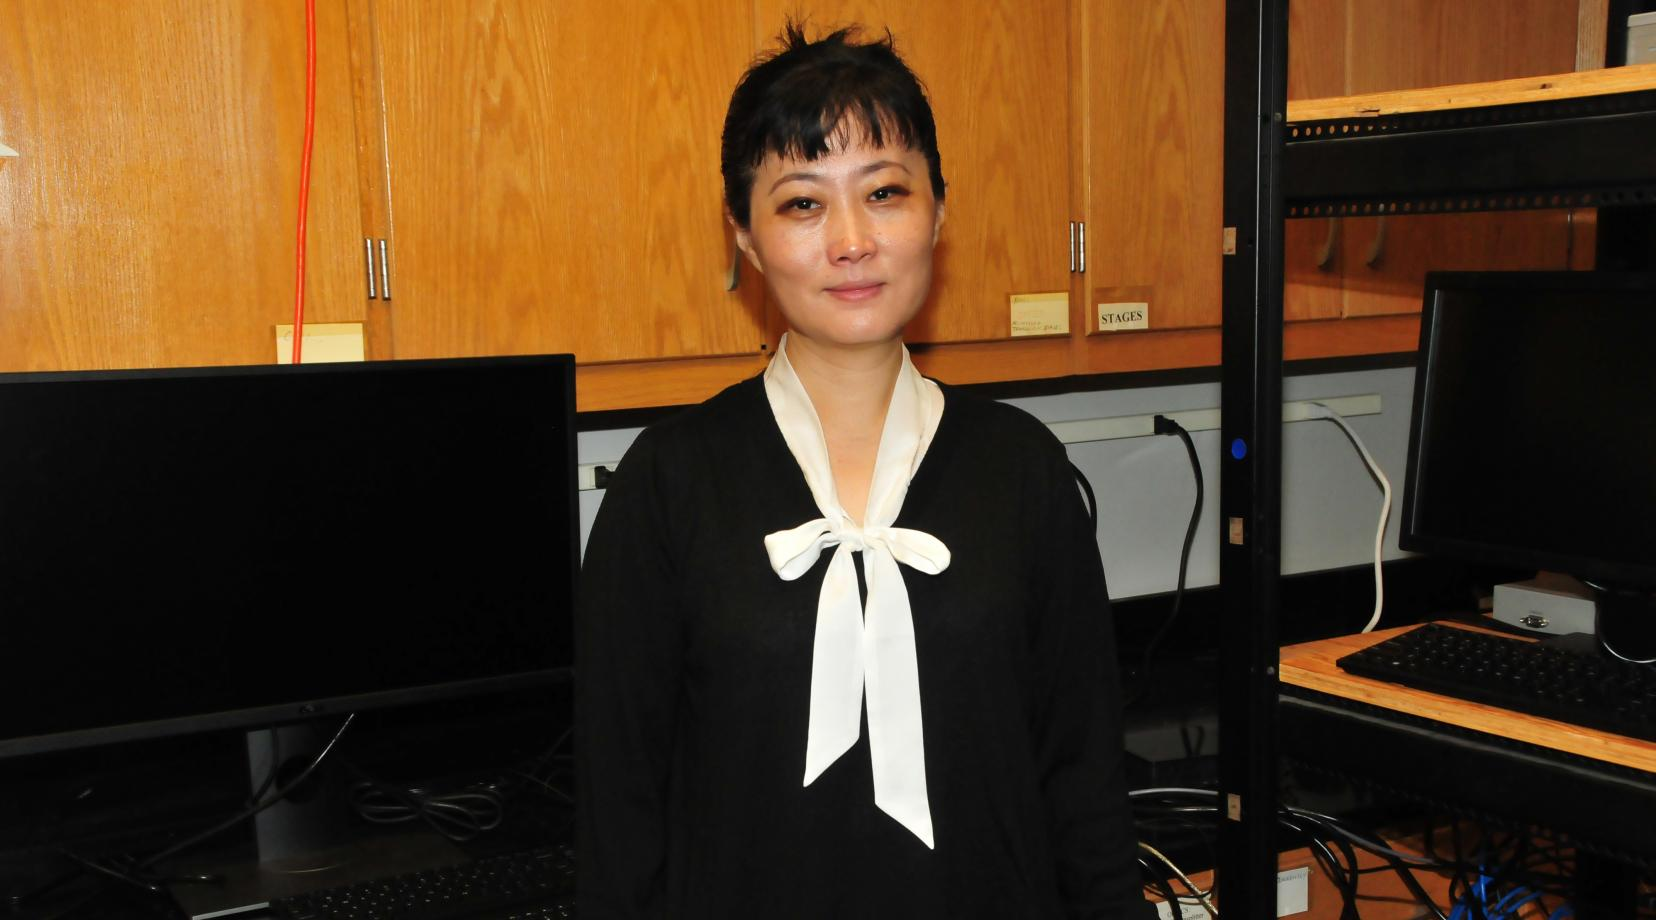 Dr. Jun Ren, assistant professor of physics and engineering, will use the almost $1 million National Science Foundation grant to research the utilization of plasma as a medium for high-intensity laser.